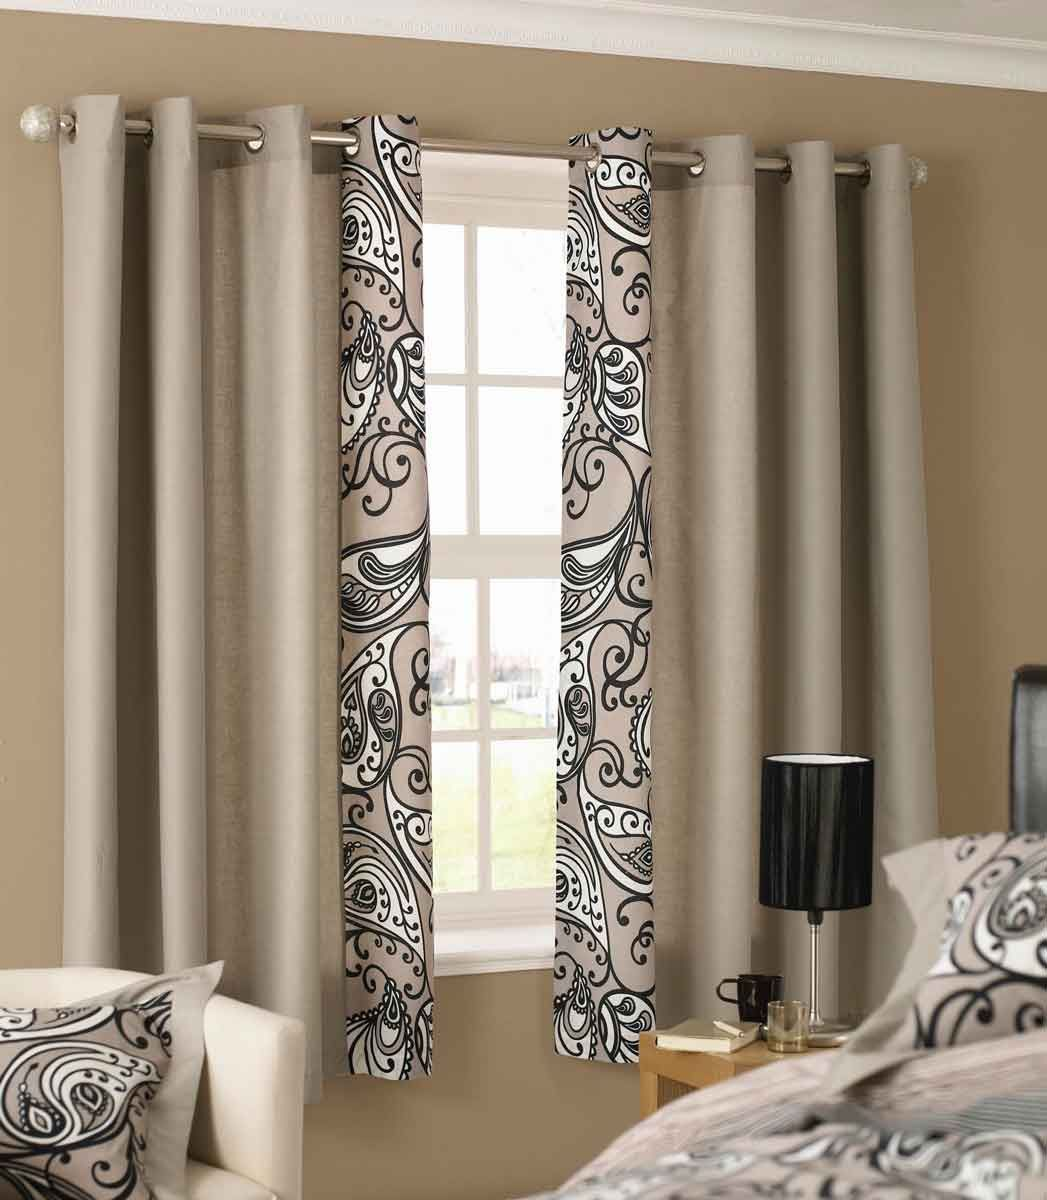 Modern Bedroom Curtains Ideas dress your windows in classy and timeless curtains | window